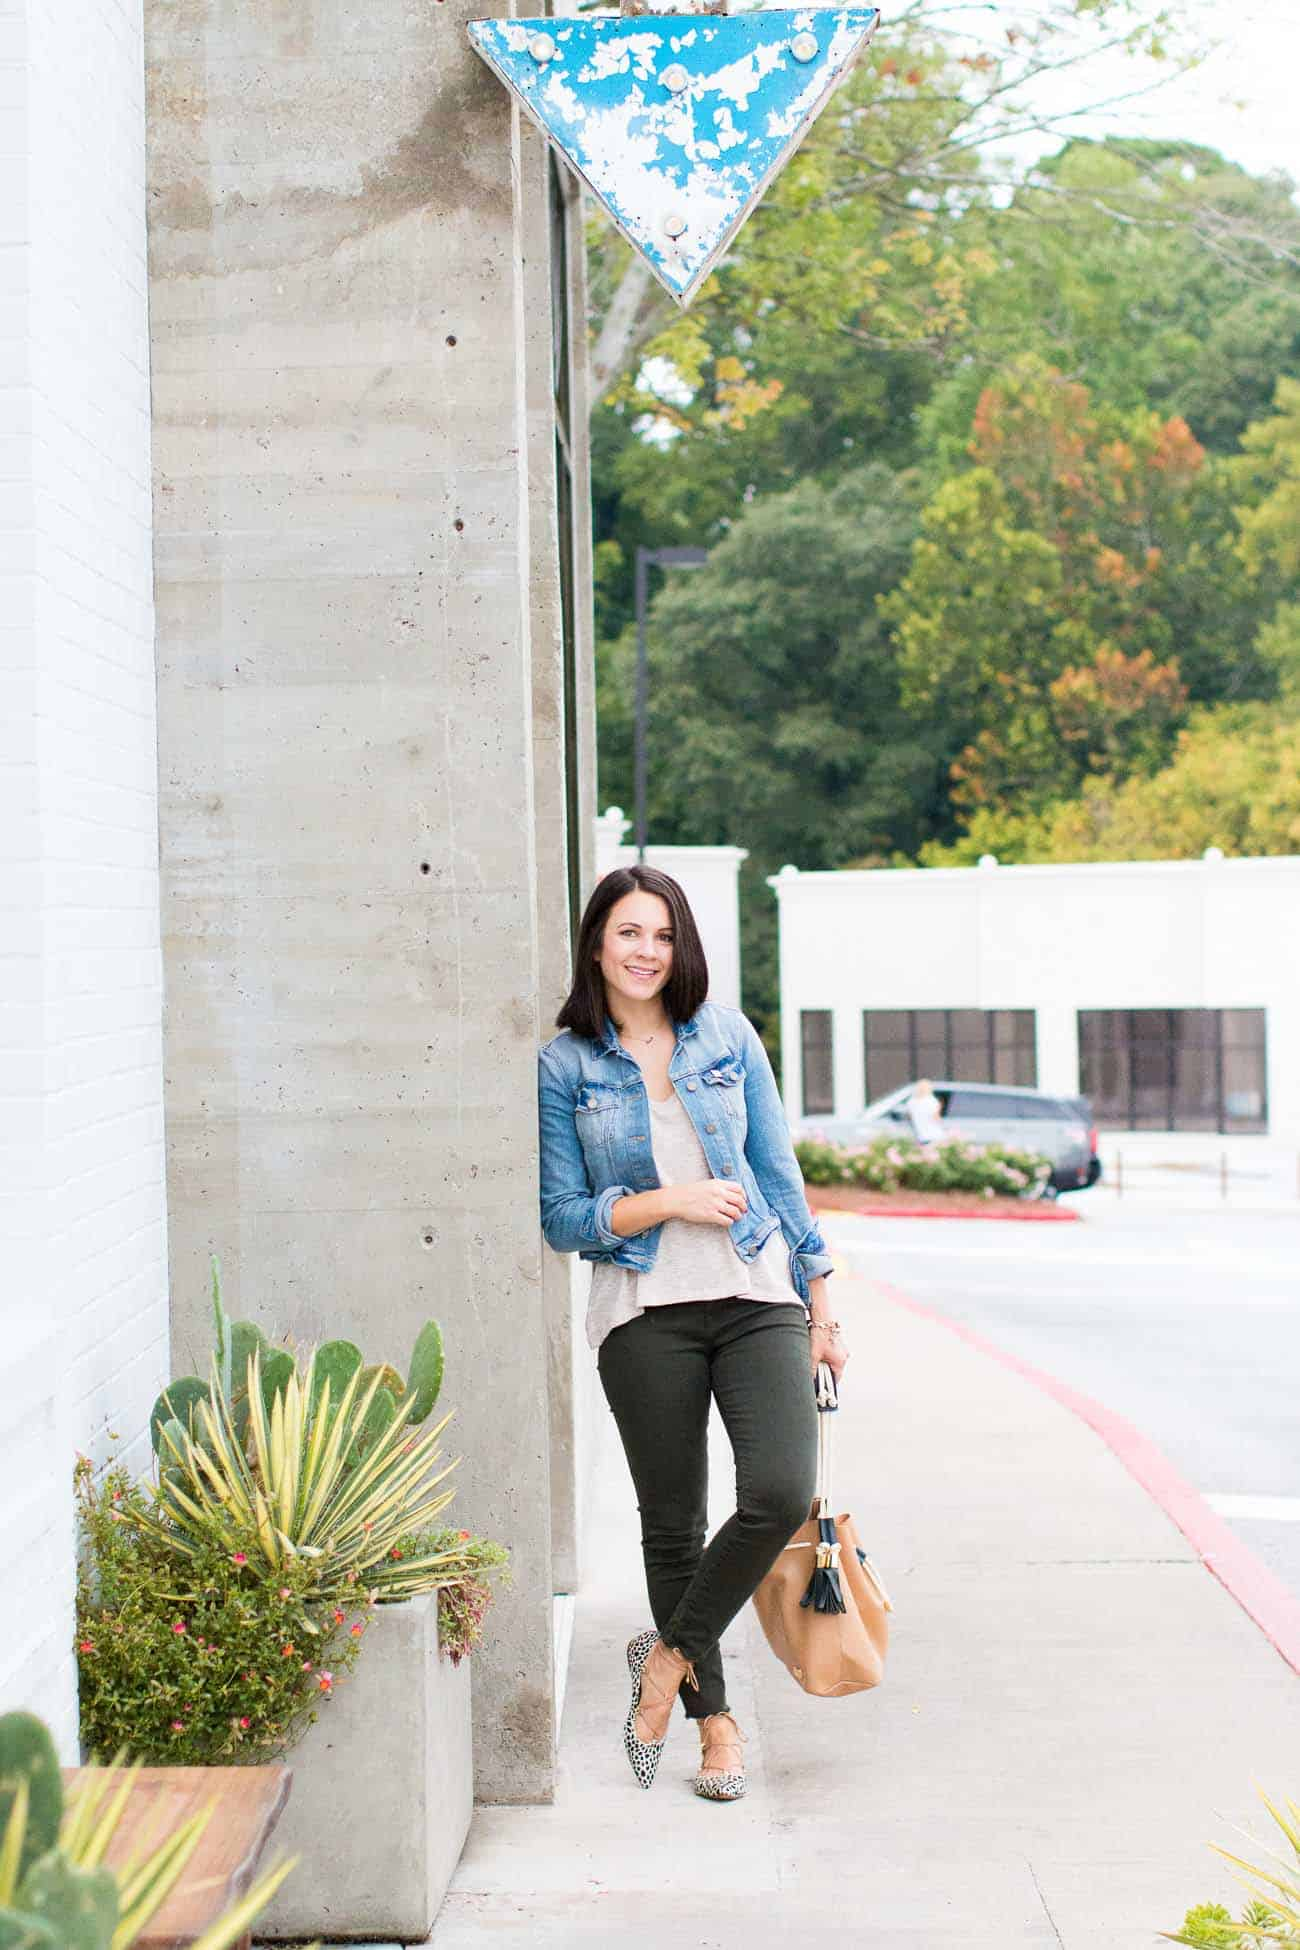 fall outfit ideas, Superica Buckhead, best mexican restaurants in Atlanta - My Style Vita @mystylevita